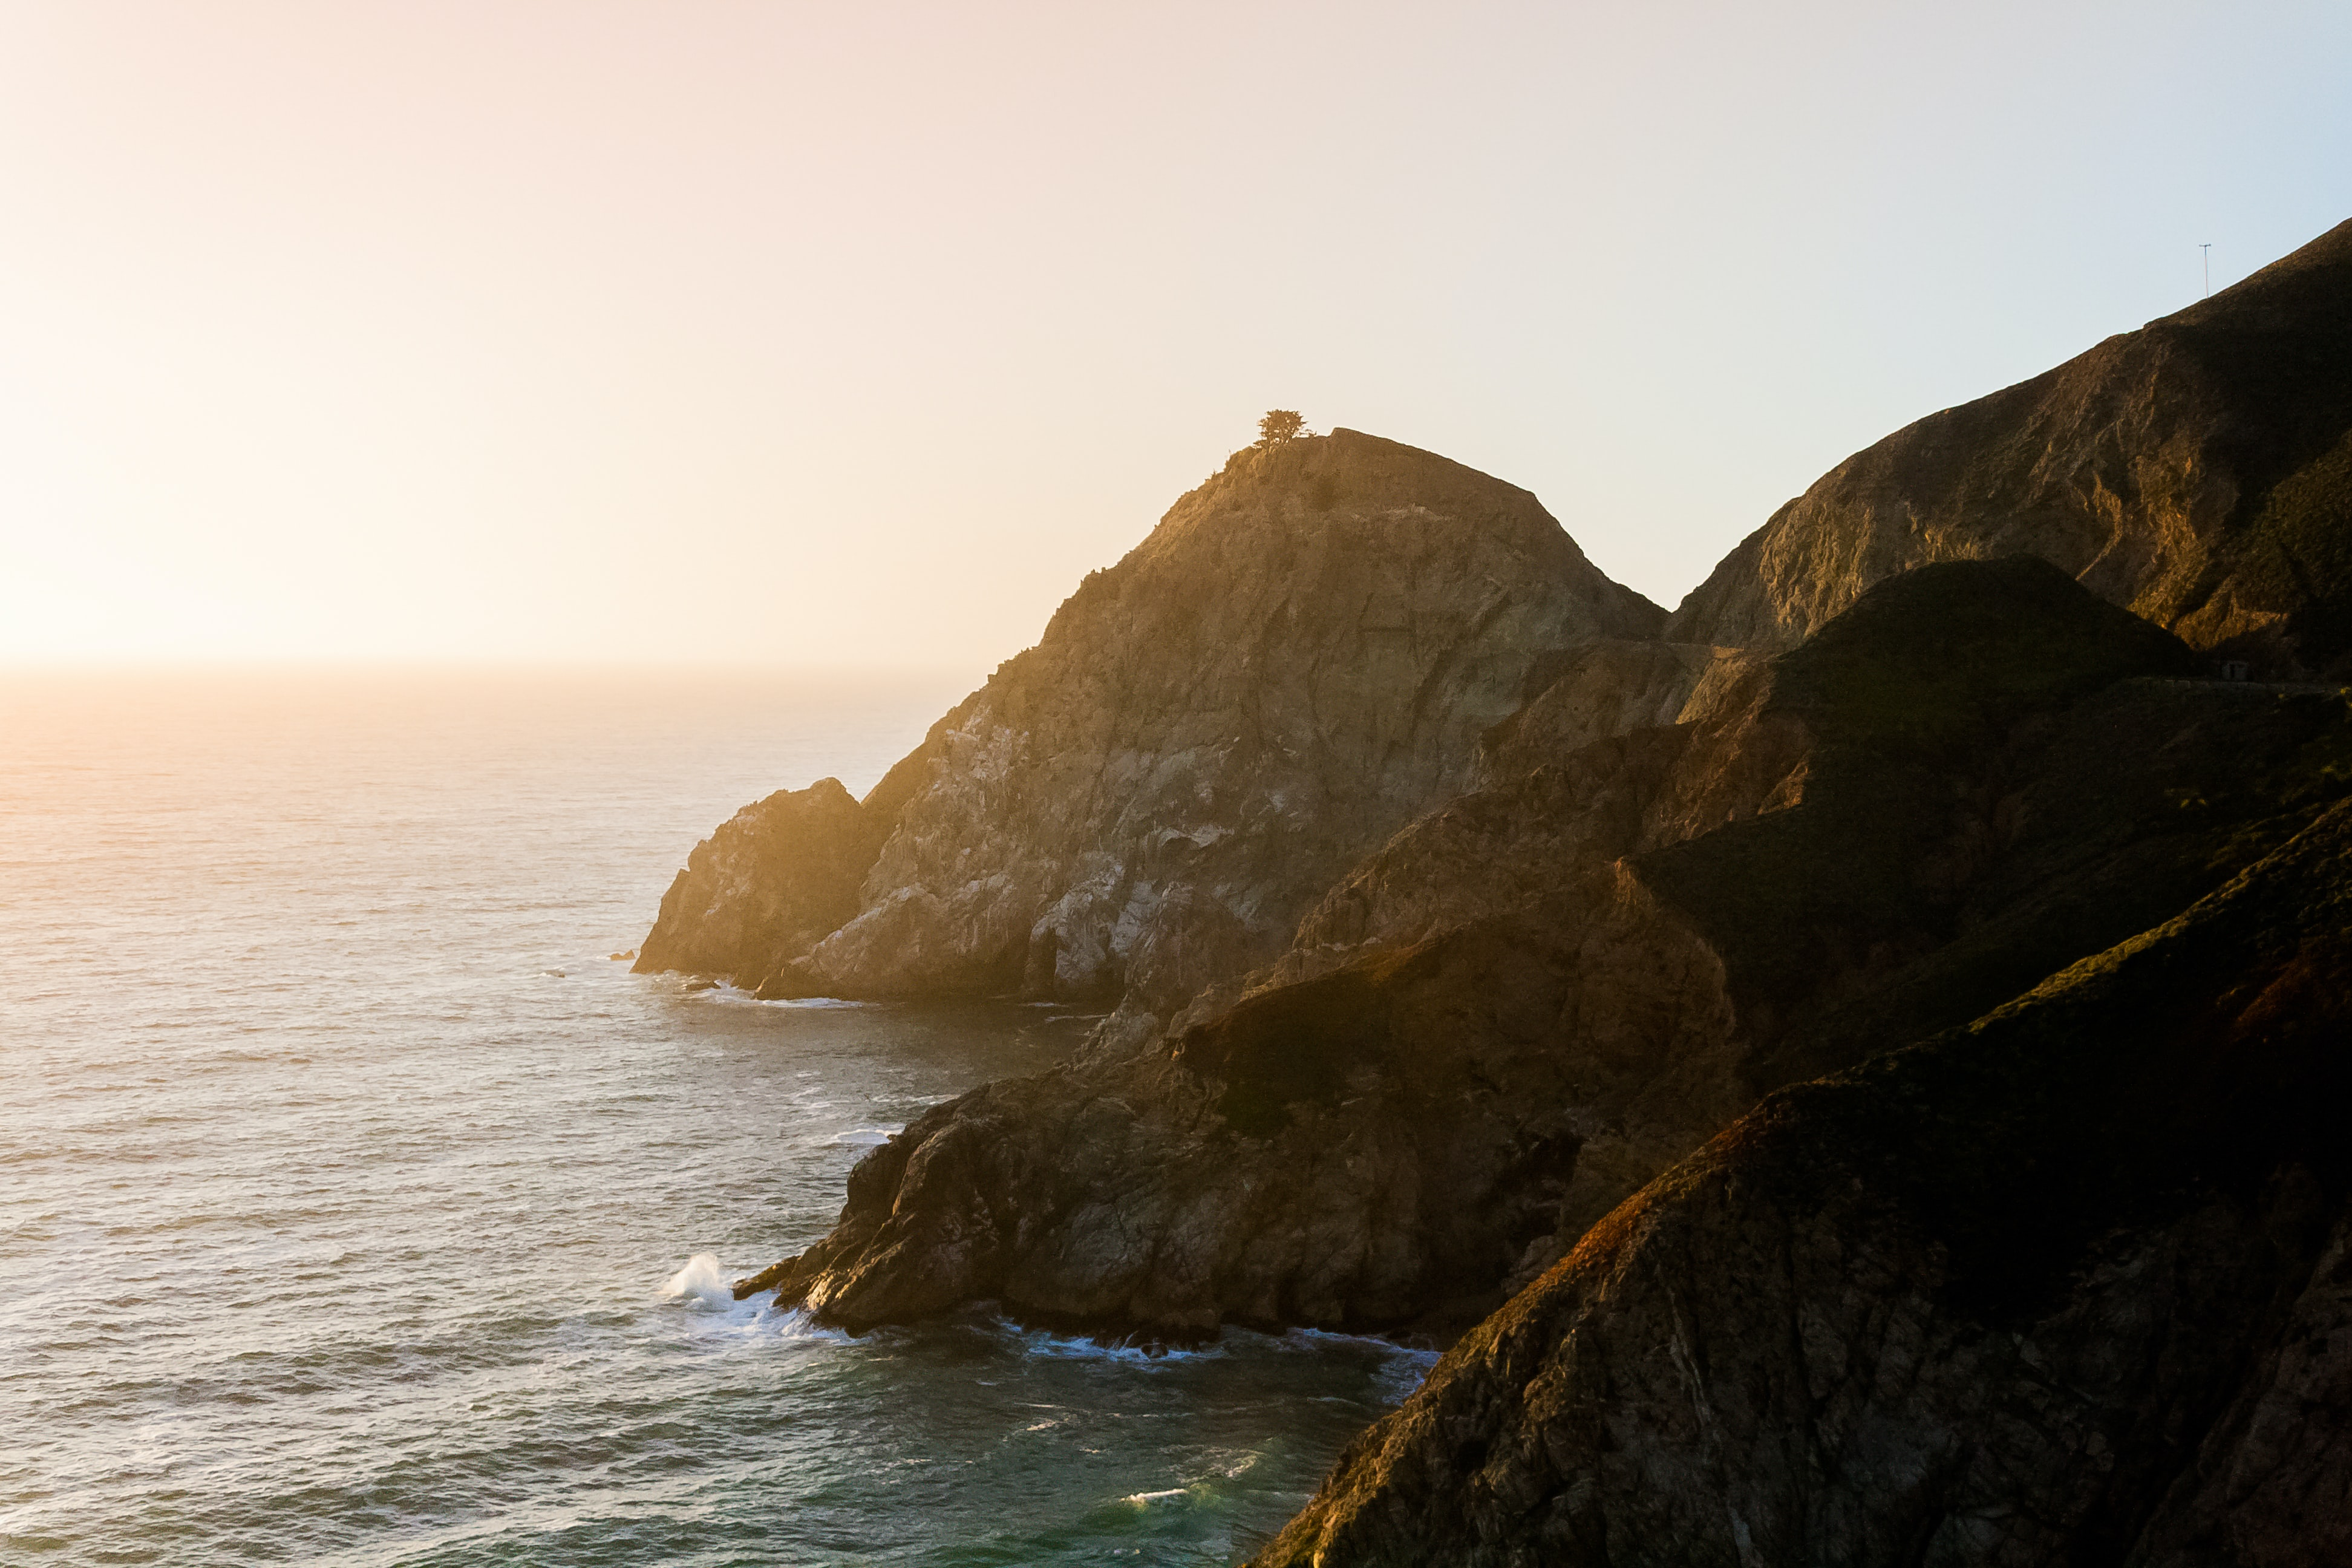 Mountains and cliff near the sea and ocean over a sunrise and the coast.